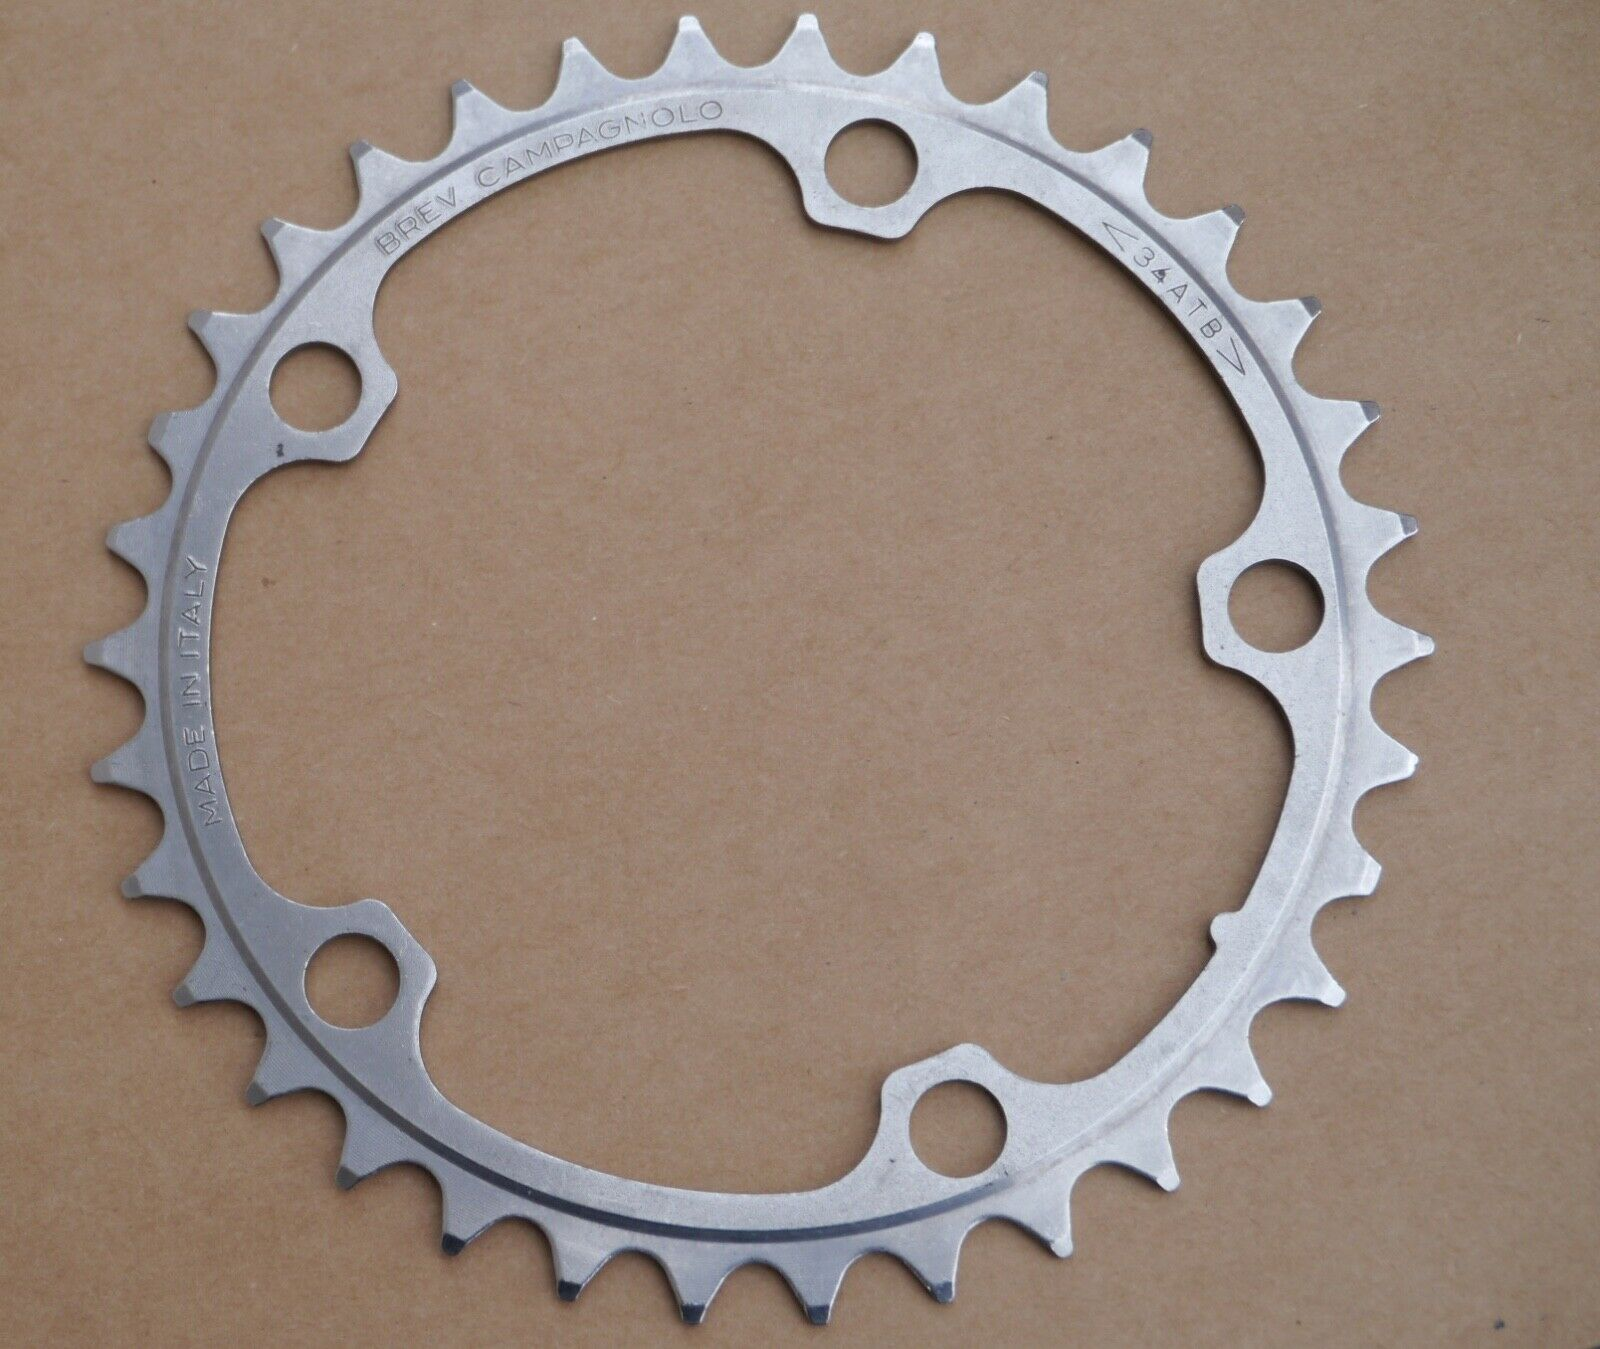 NOS Campagnolo Record  52t, 10s  road bike outer chainring  primera vez respuesta